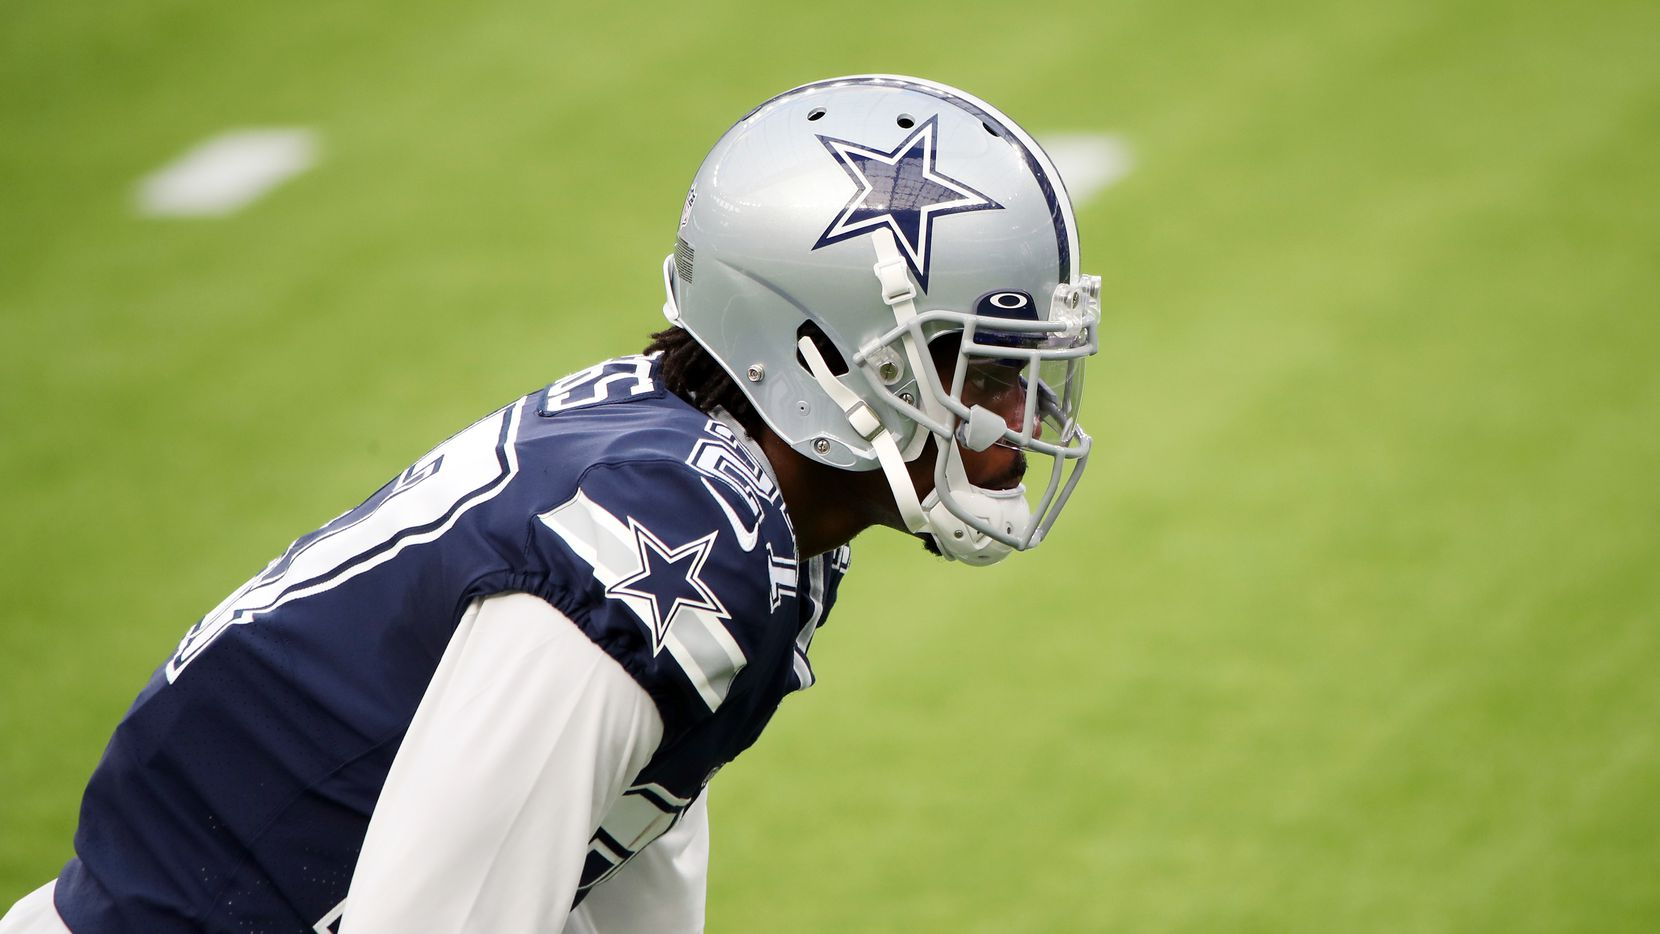 Trevon Diggs #27 of the Dallas Cowboys warms up before the game against the Los Angeles Rams at SoFi Stadium on September 13, 2020 in Inglewood, California.